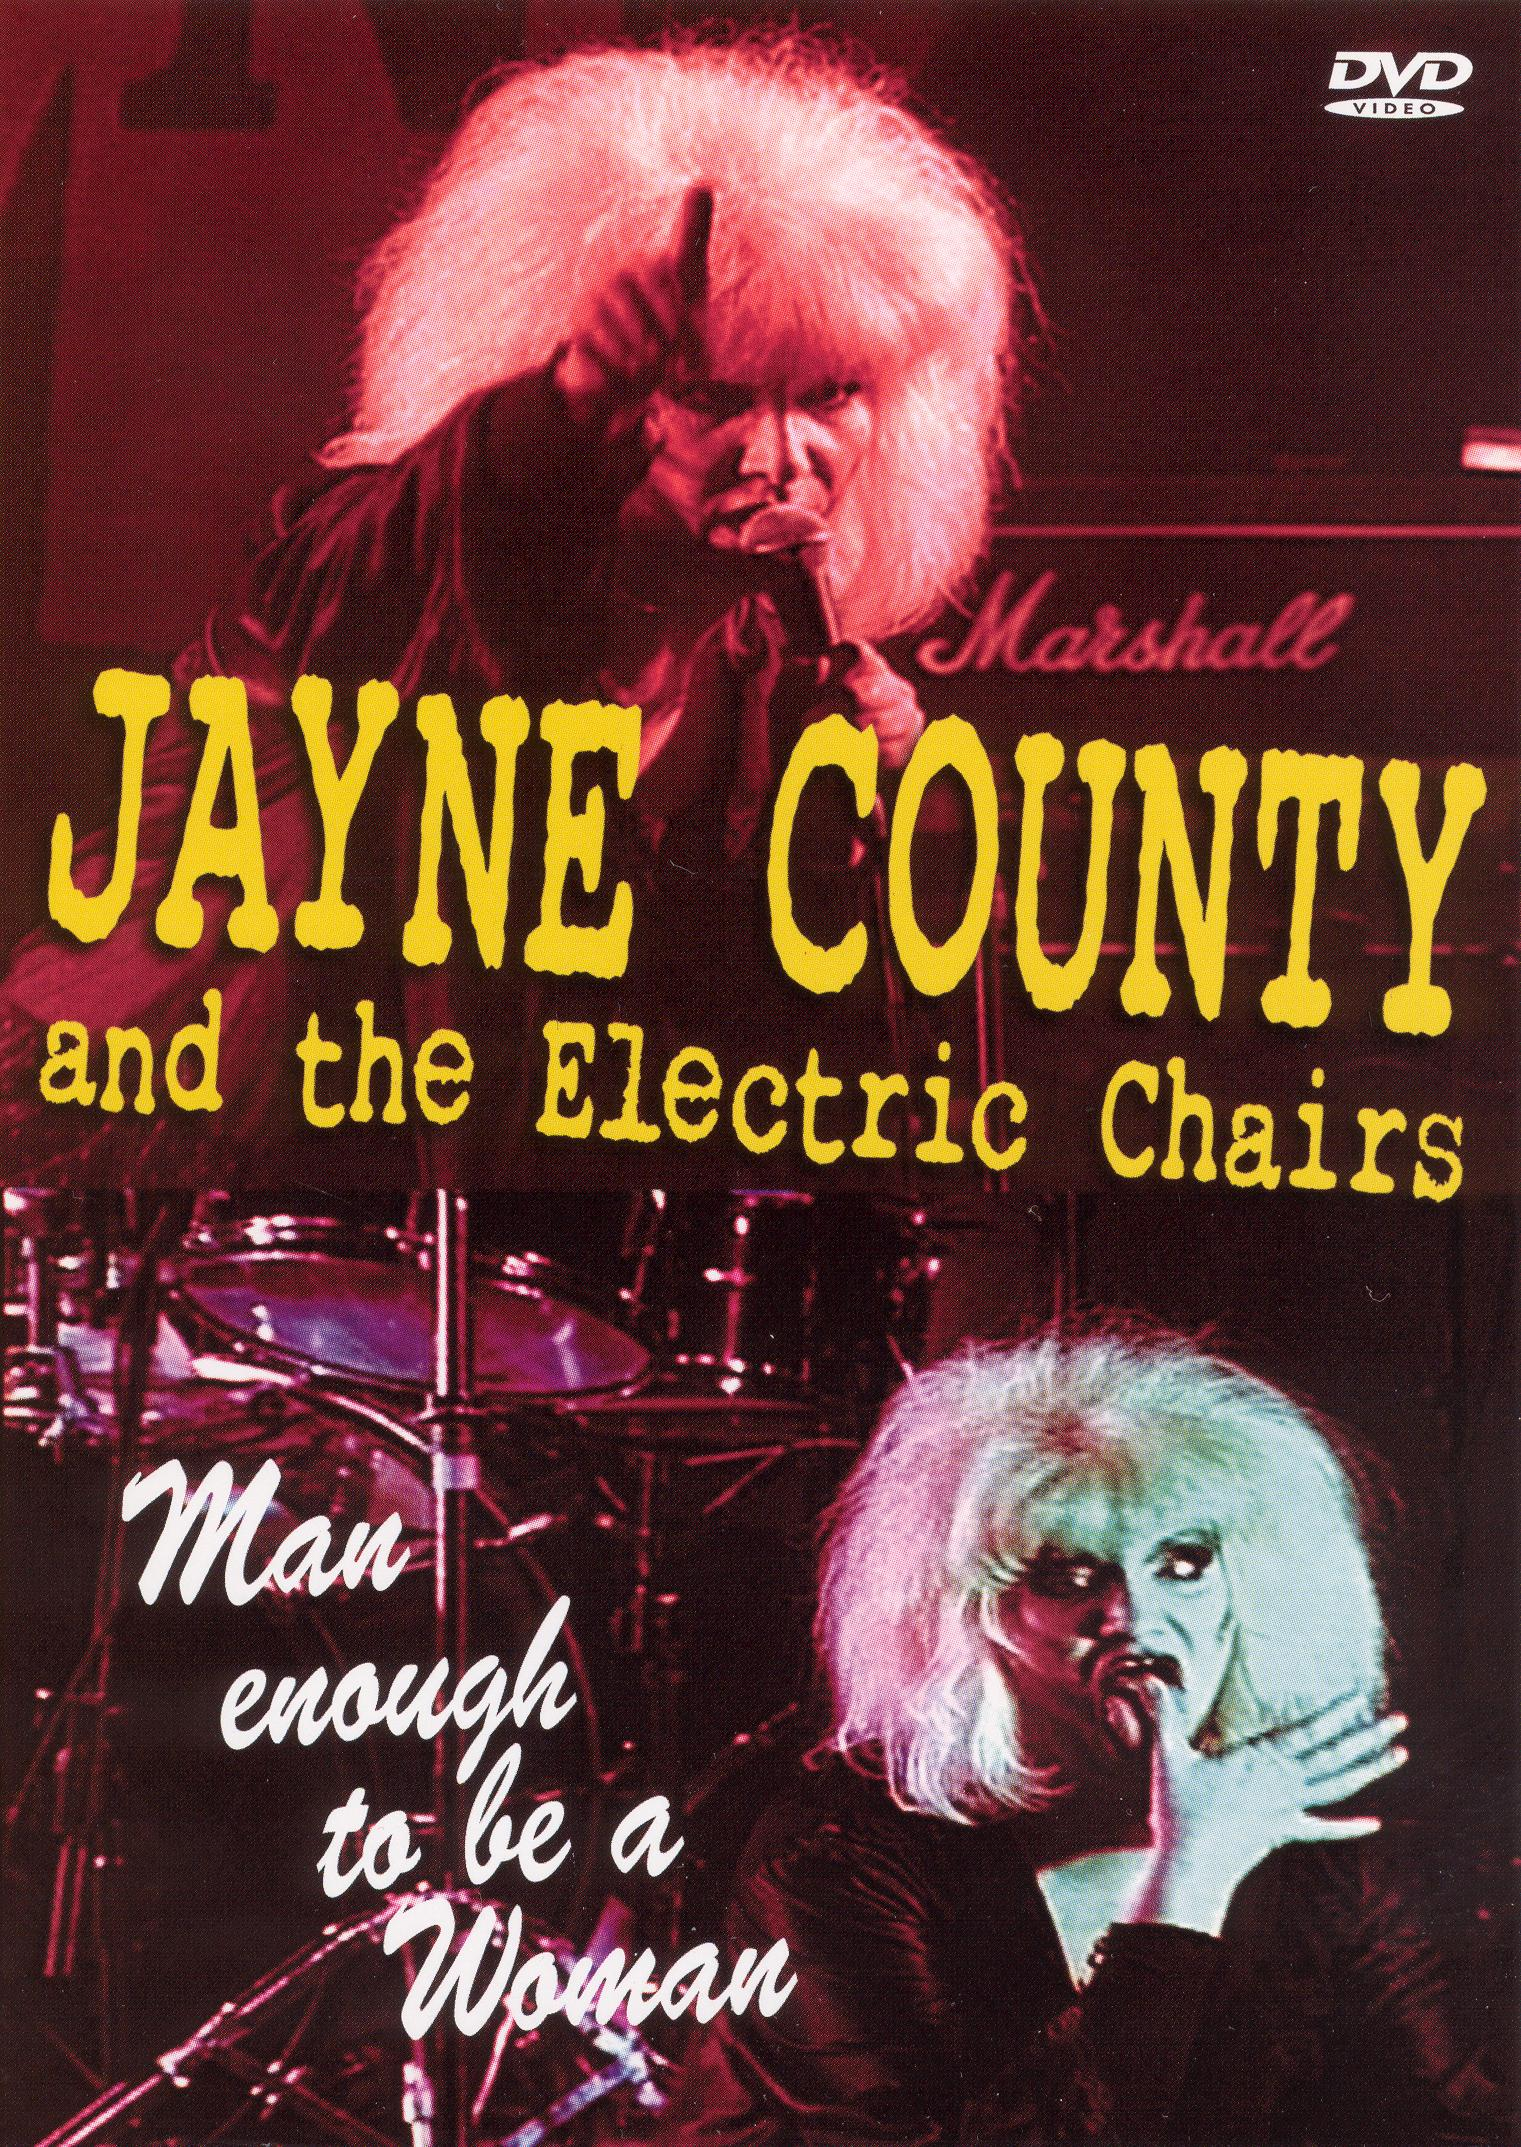 Jane County and the Electric Chairs: Man Enough To Be a Woman